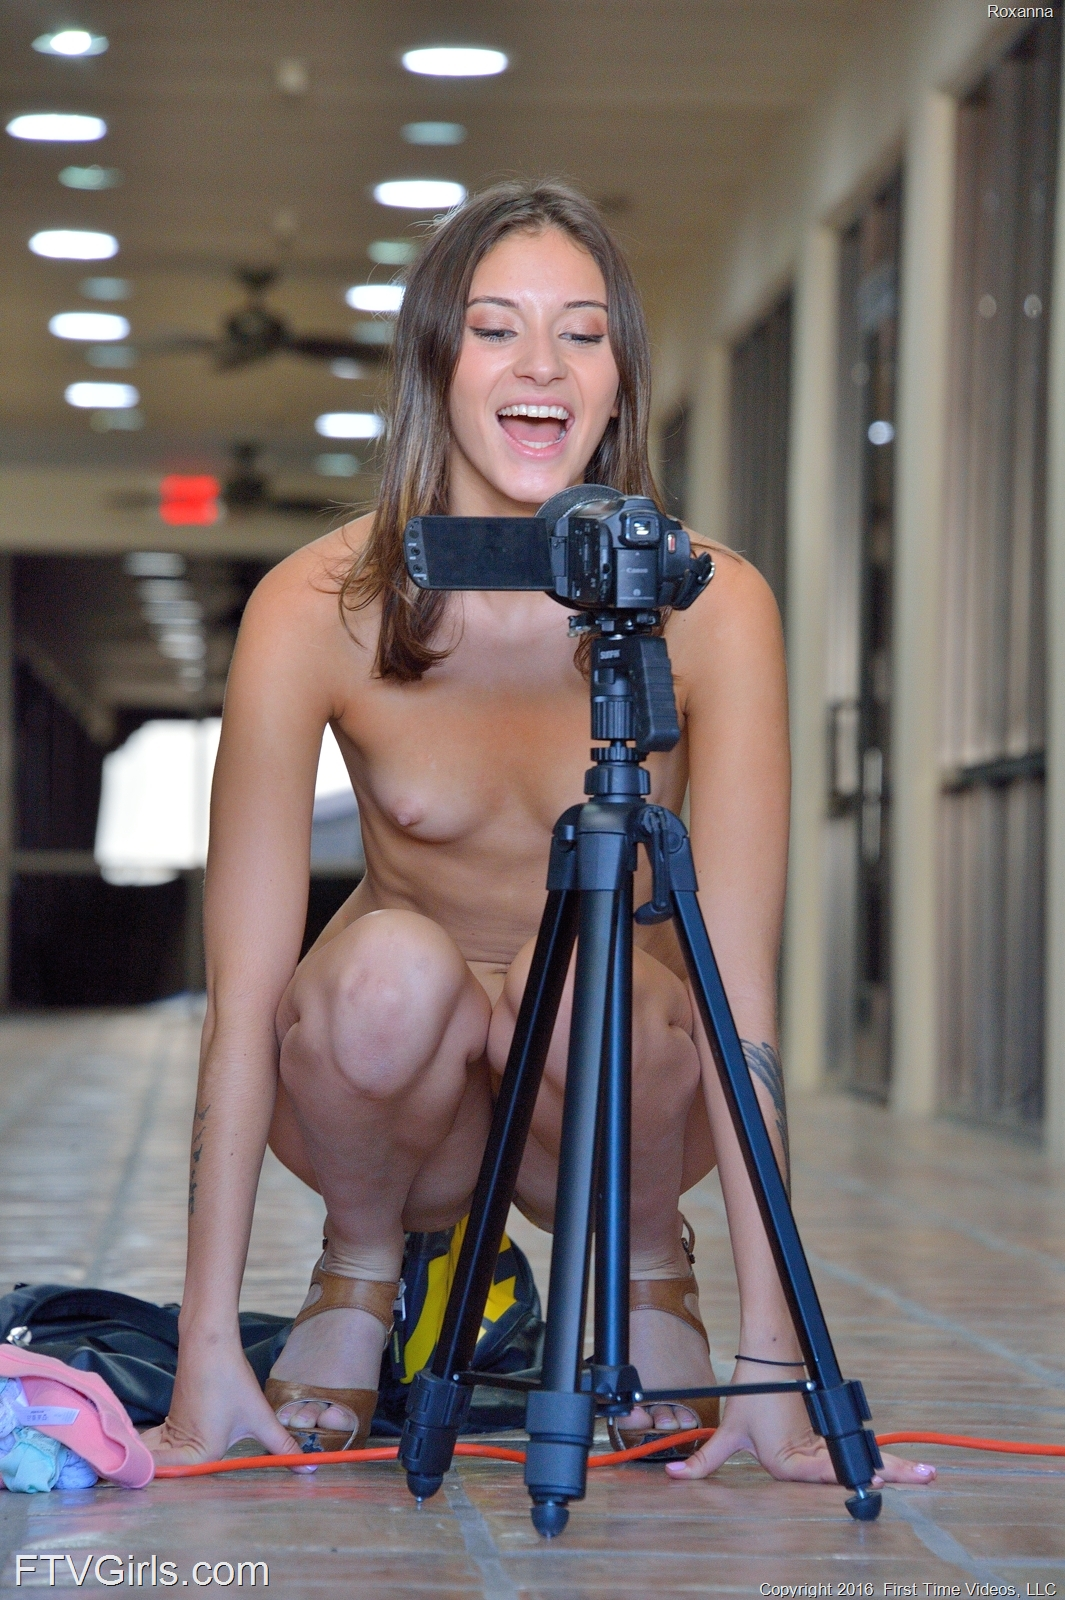 upskirt lift with roxanna ftvgirls #8